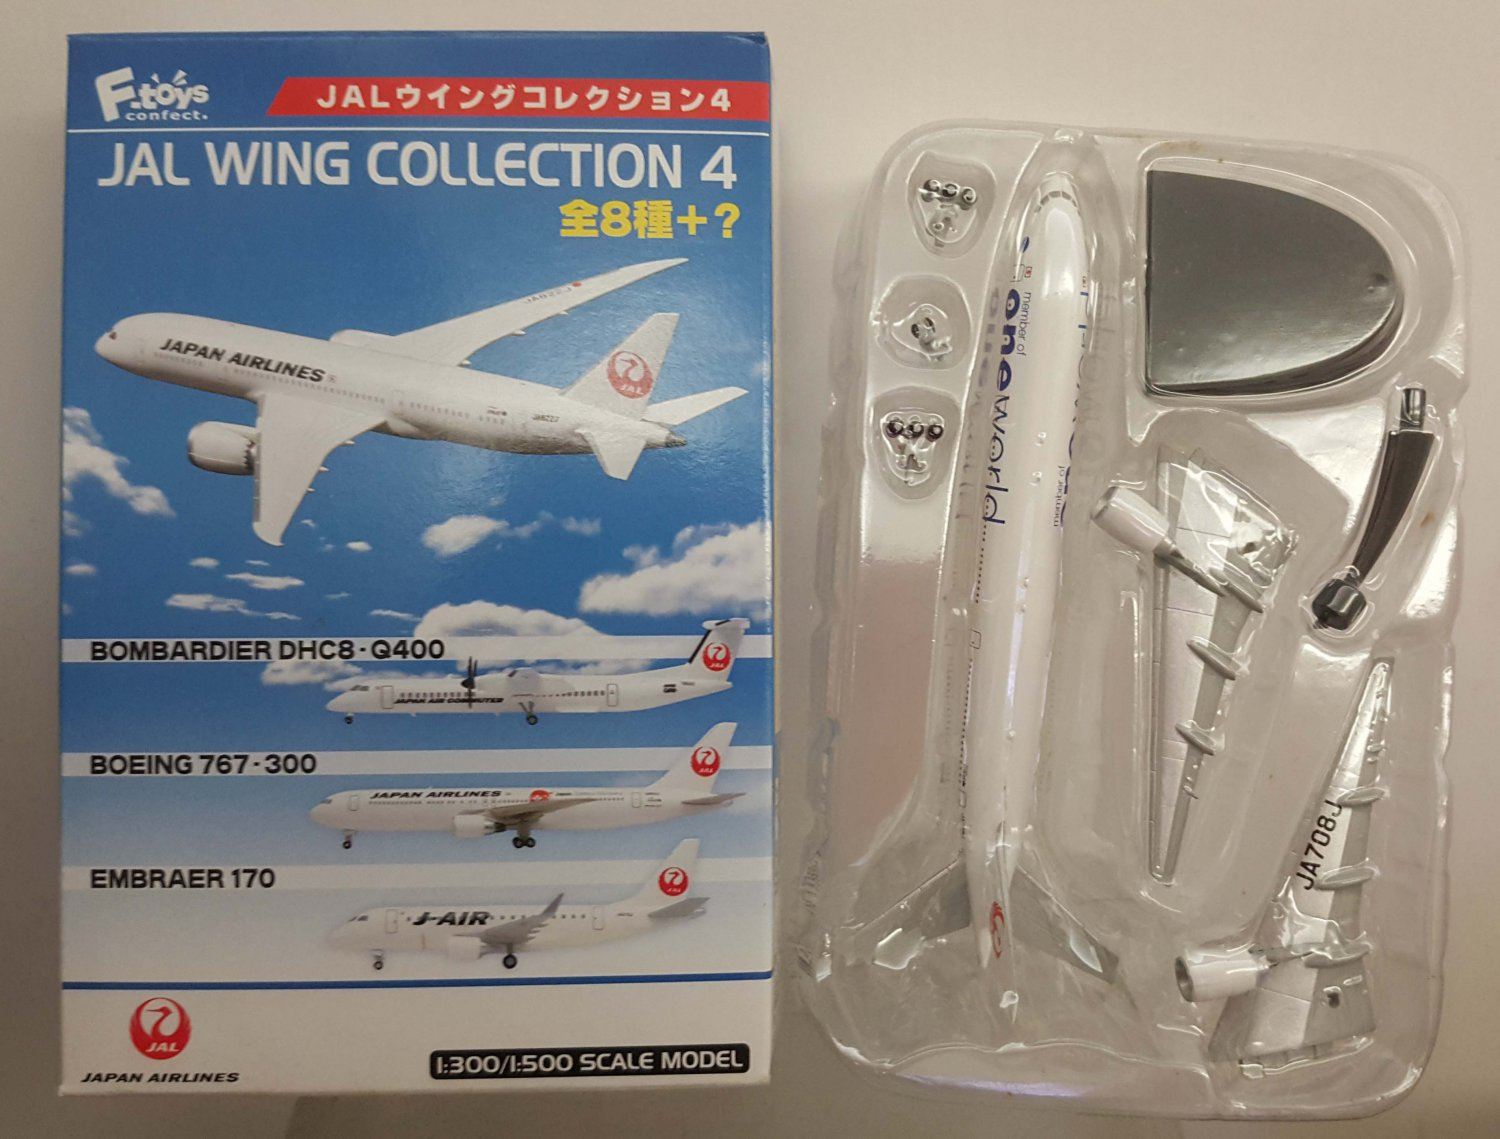 F Toys JAL Wing Collection 4 Aeroplane 1/500 Boeing 777-200 (One World) Secret Item